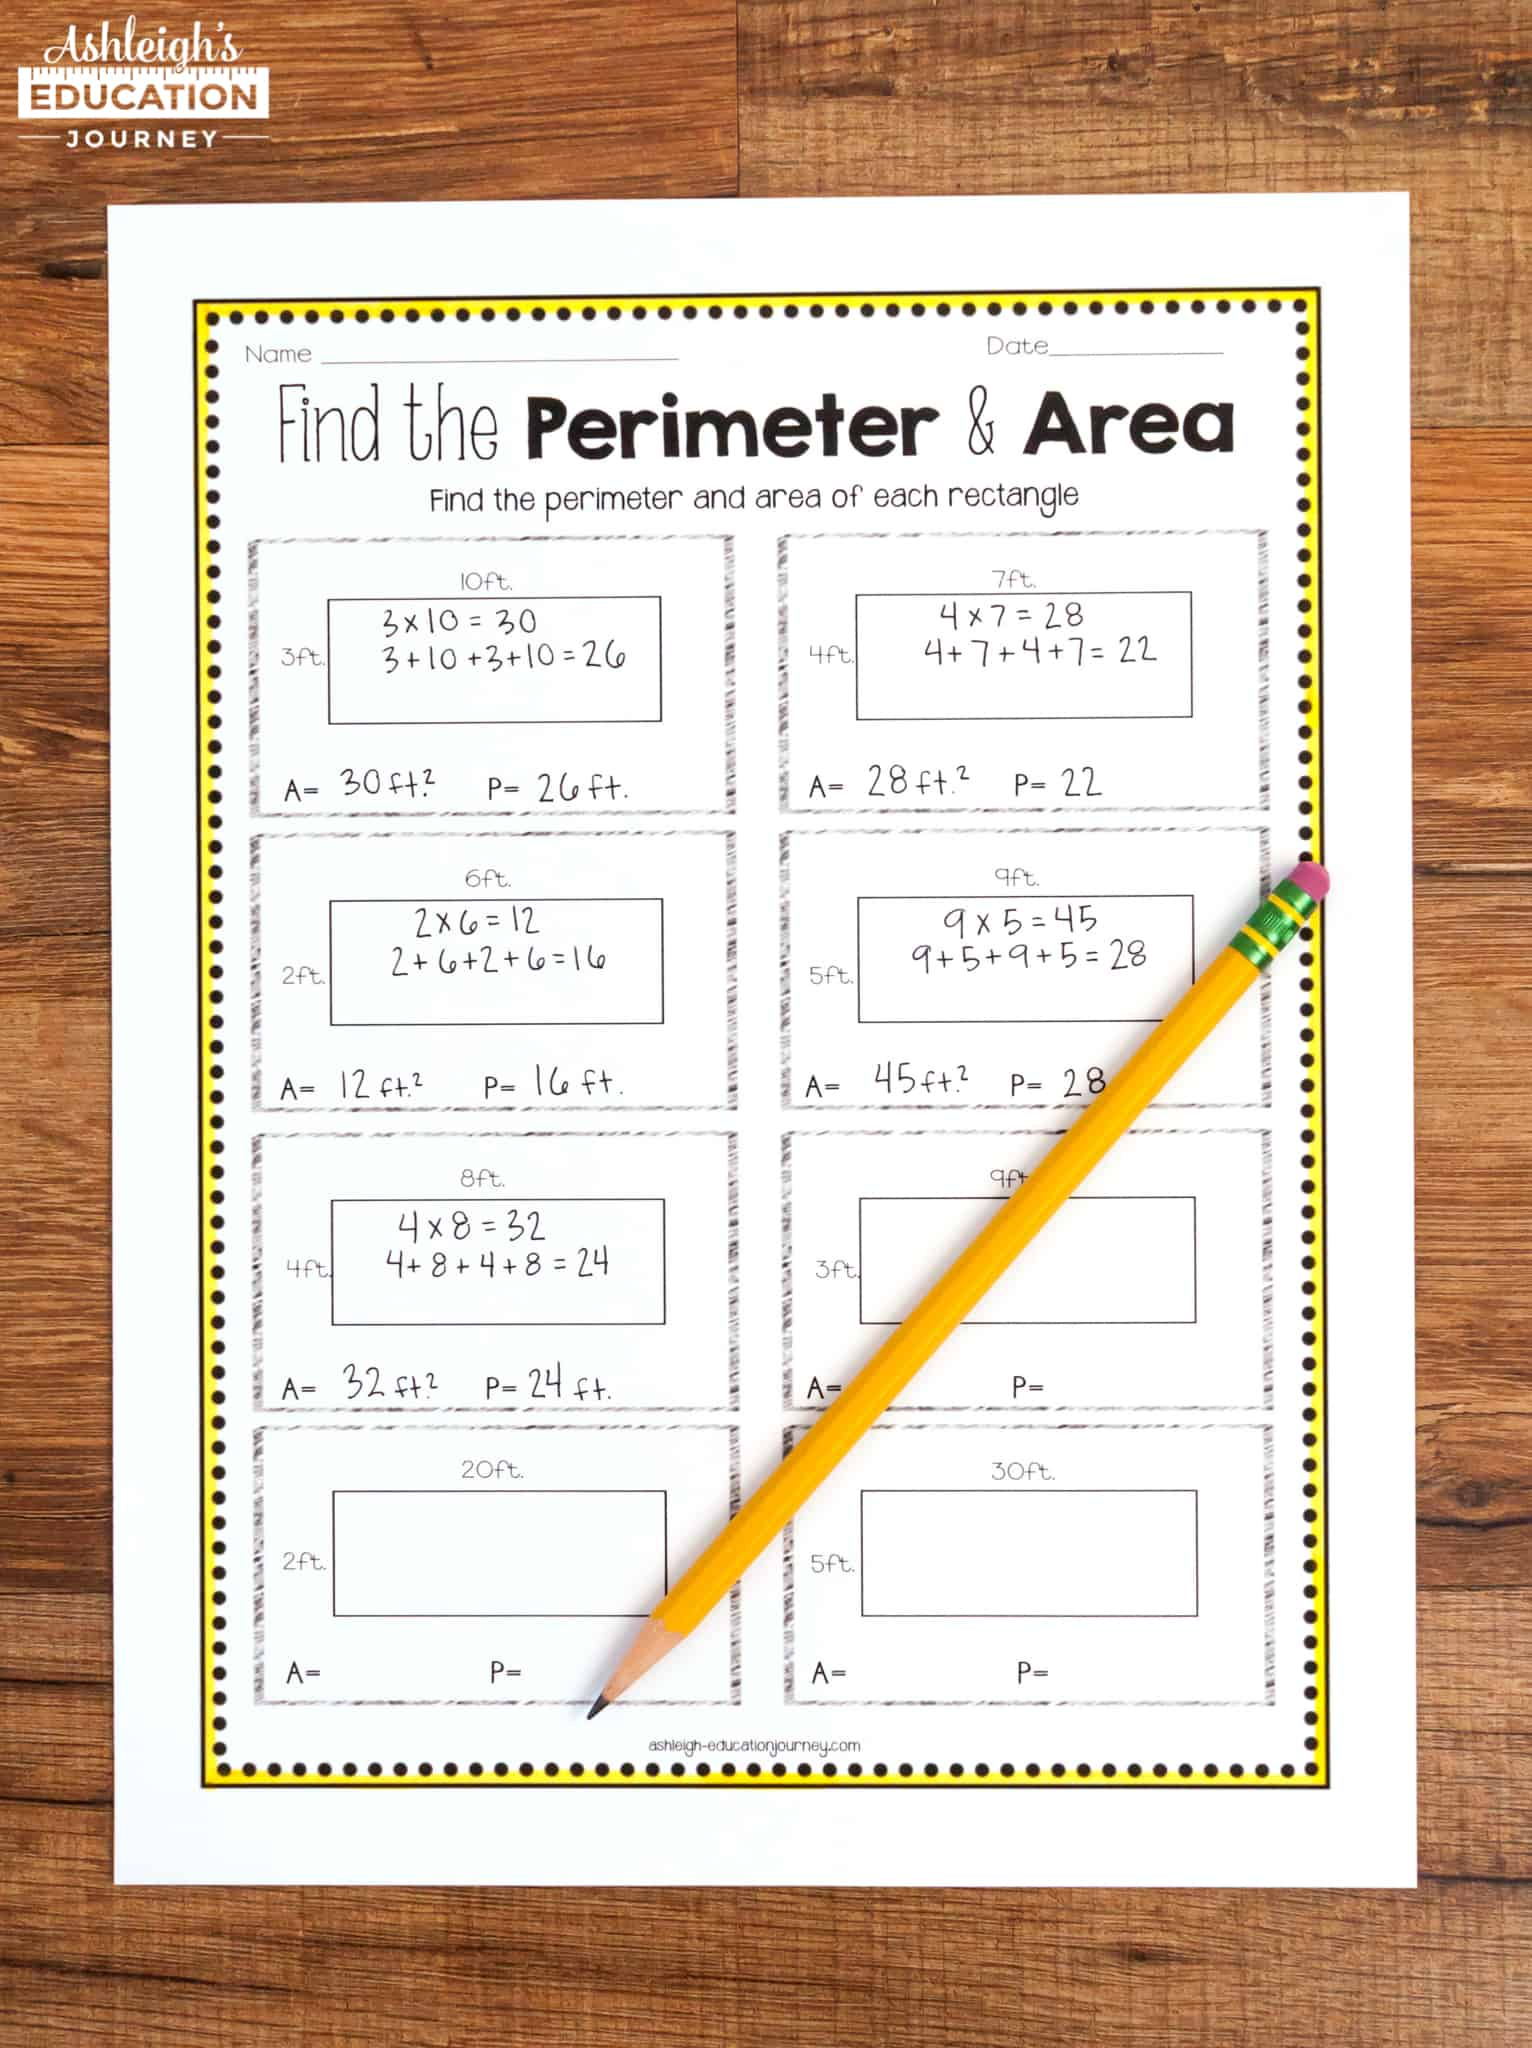 hight resolution of Teaching Area and Perimeter - Ashleigh's Education Journey